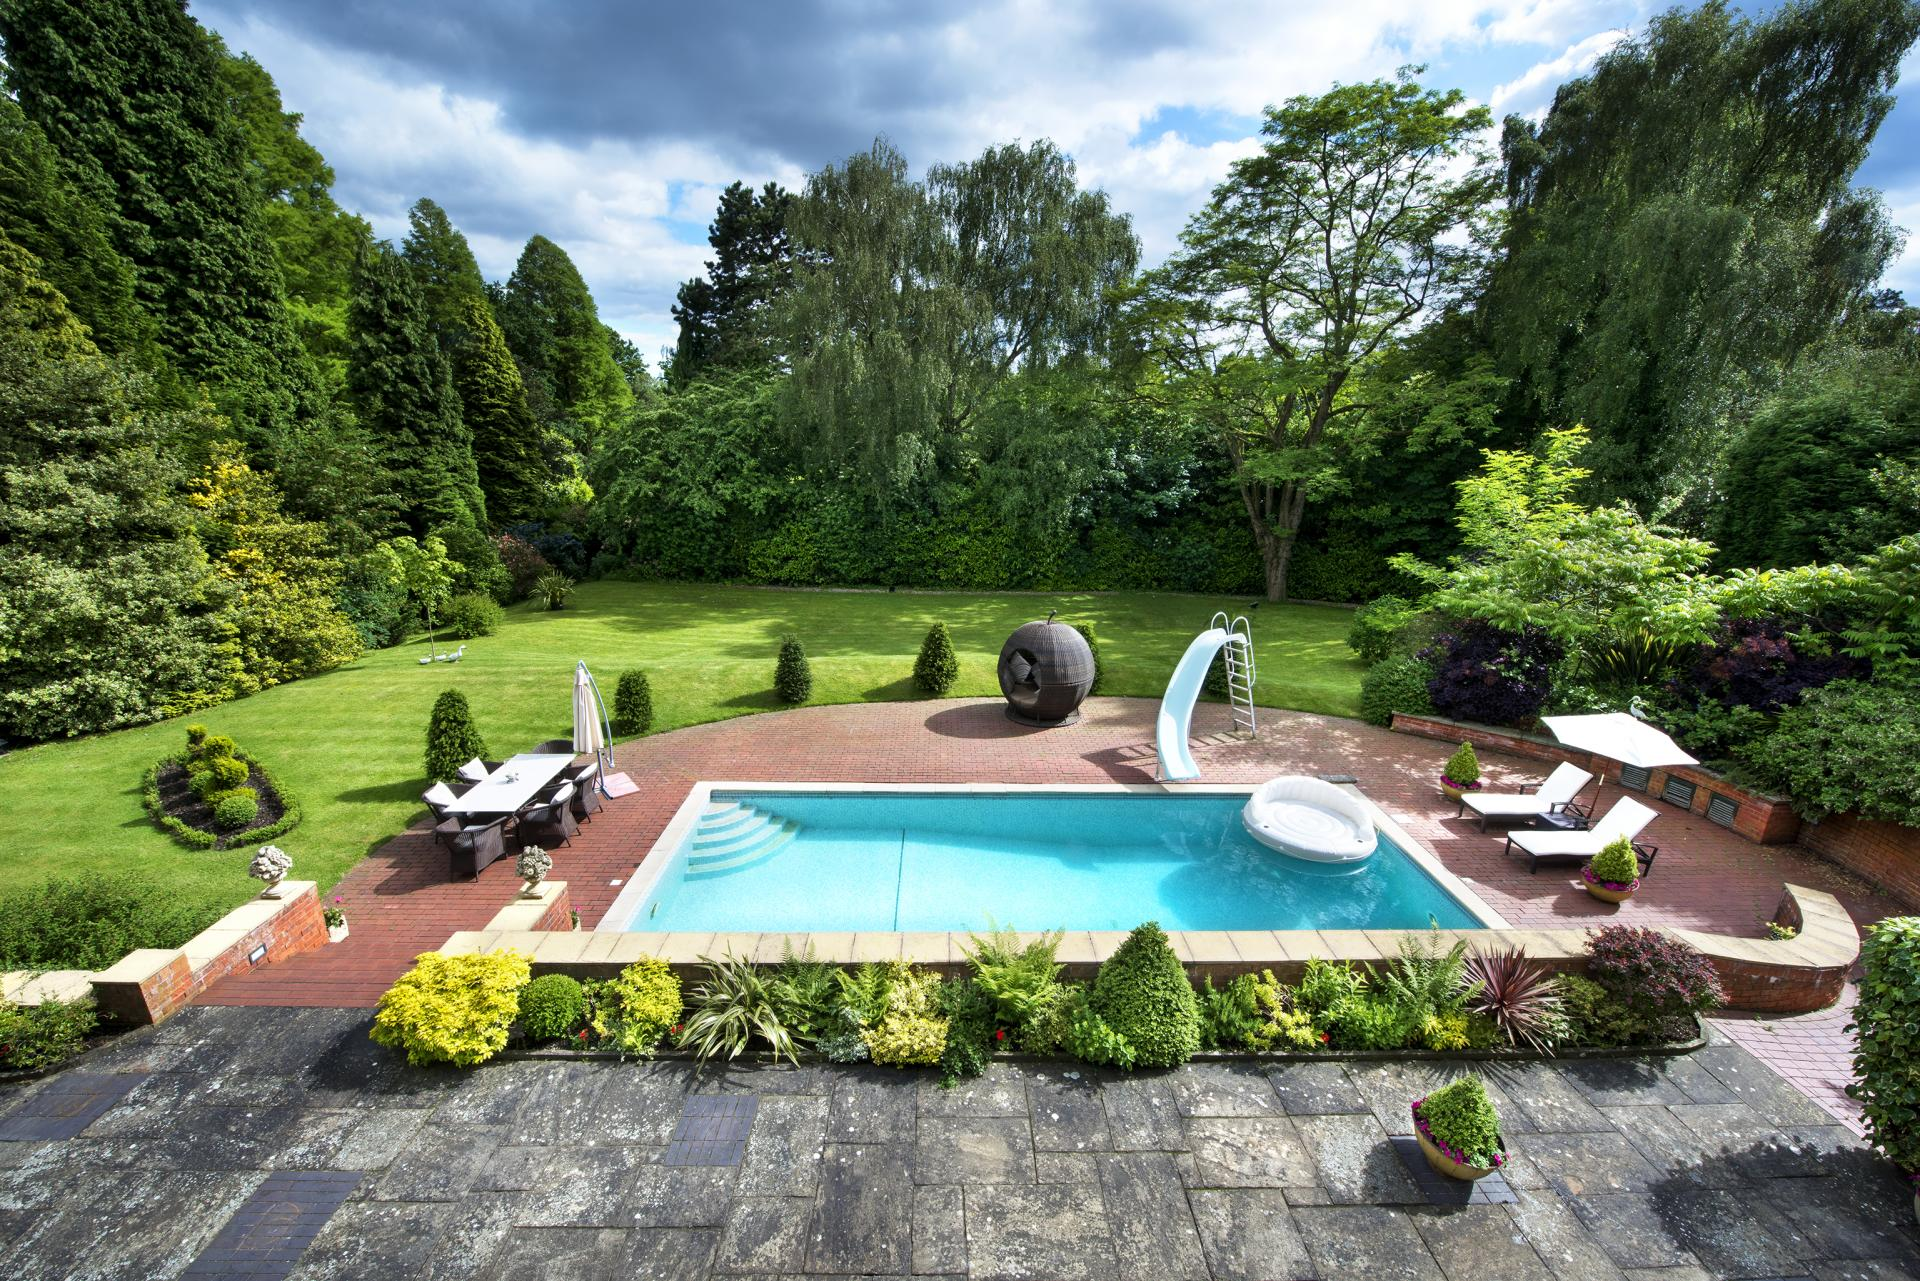 10 bedroom detached house for sale in sutton coldfield Swimming pool sutton coldfield